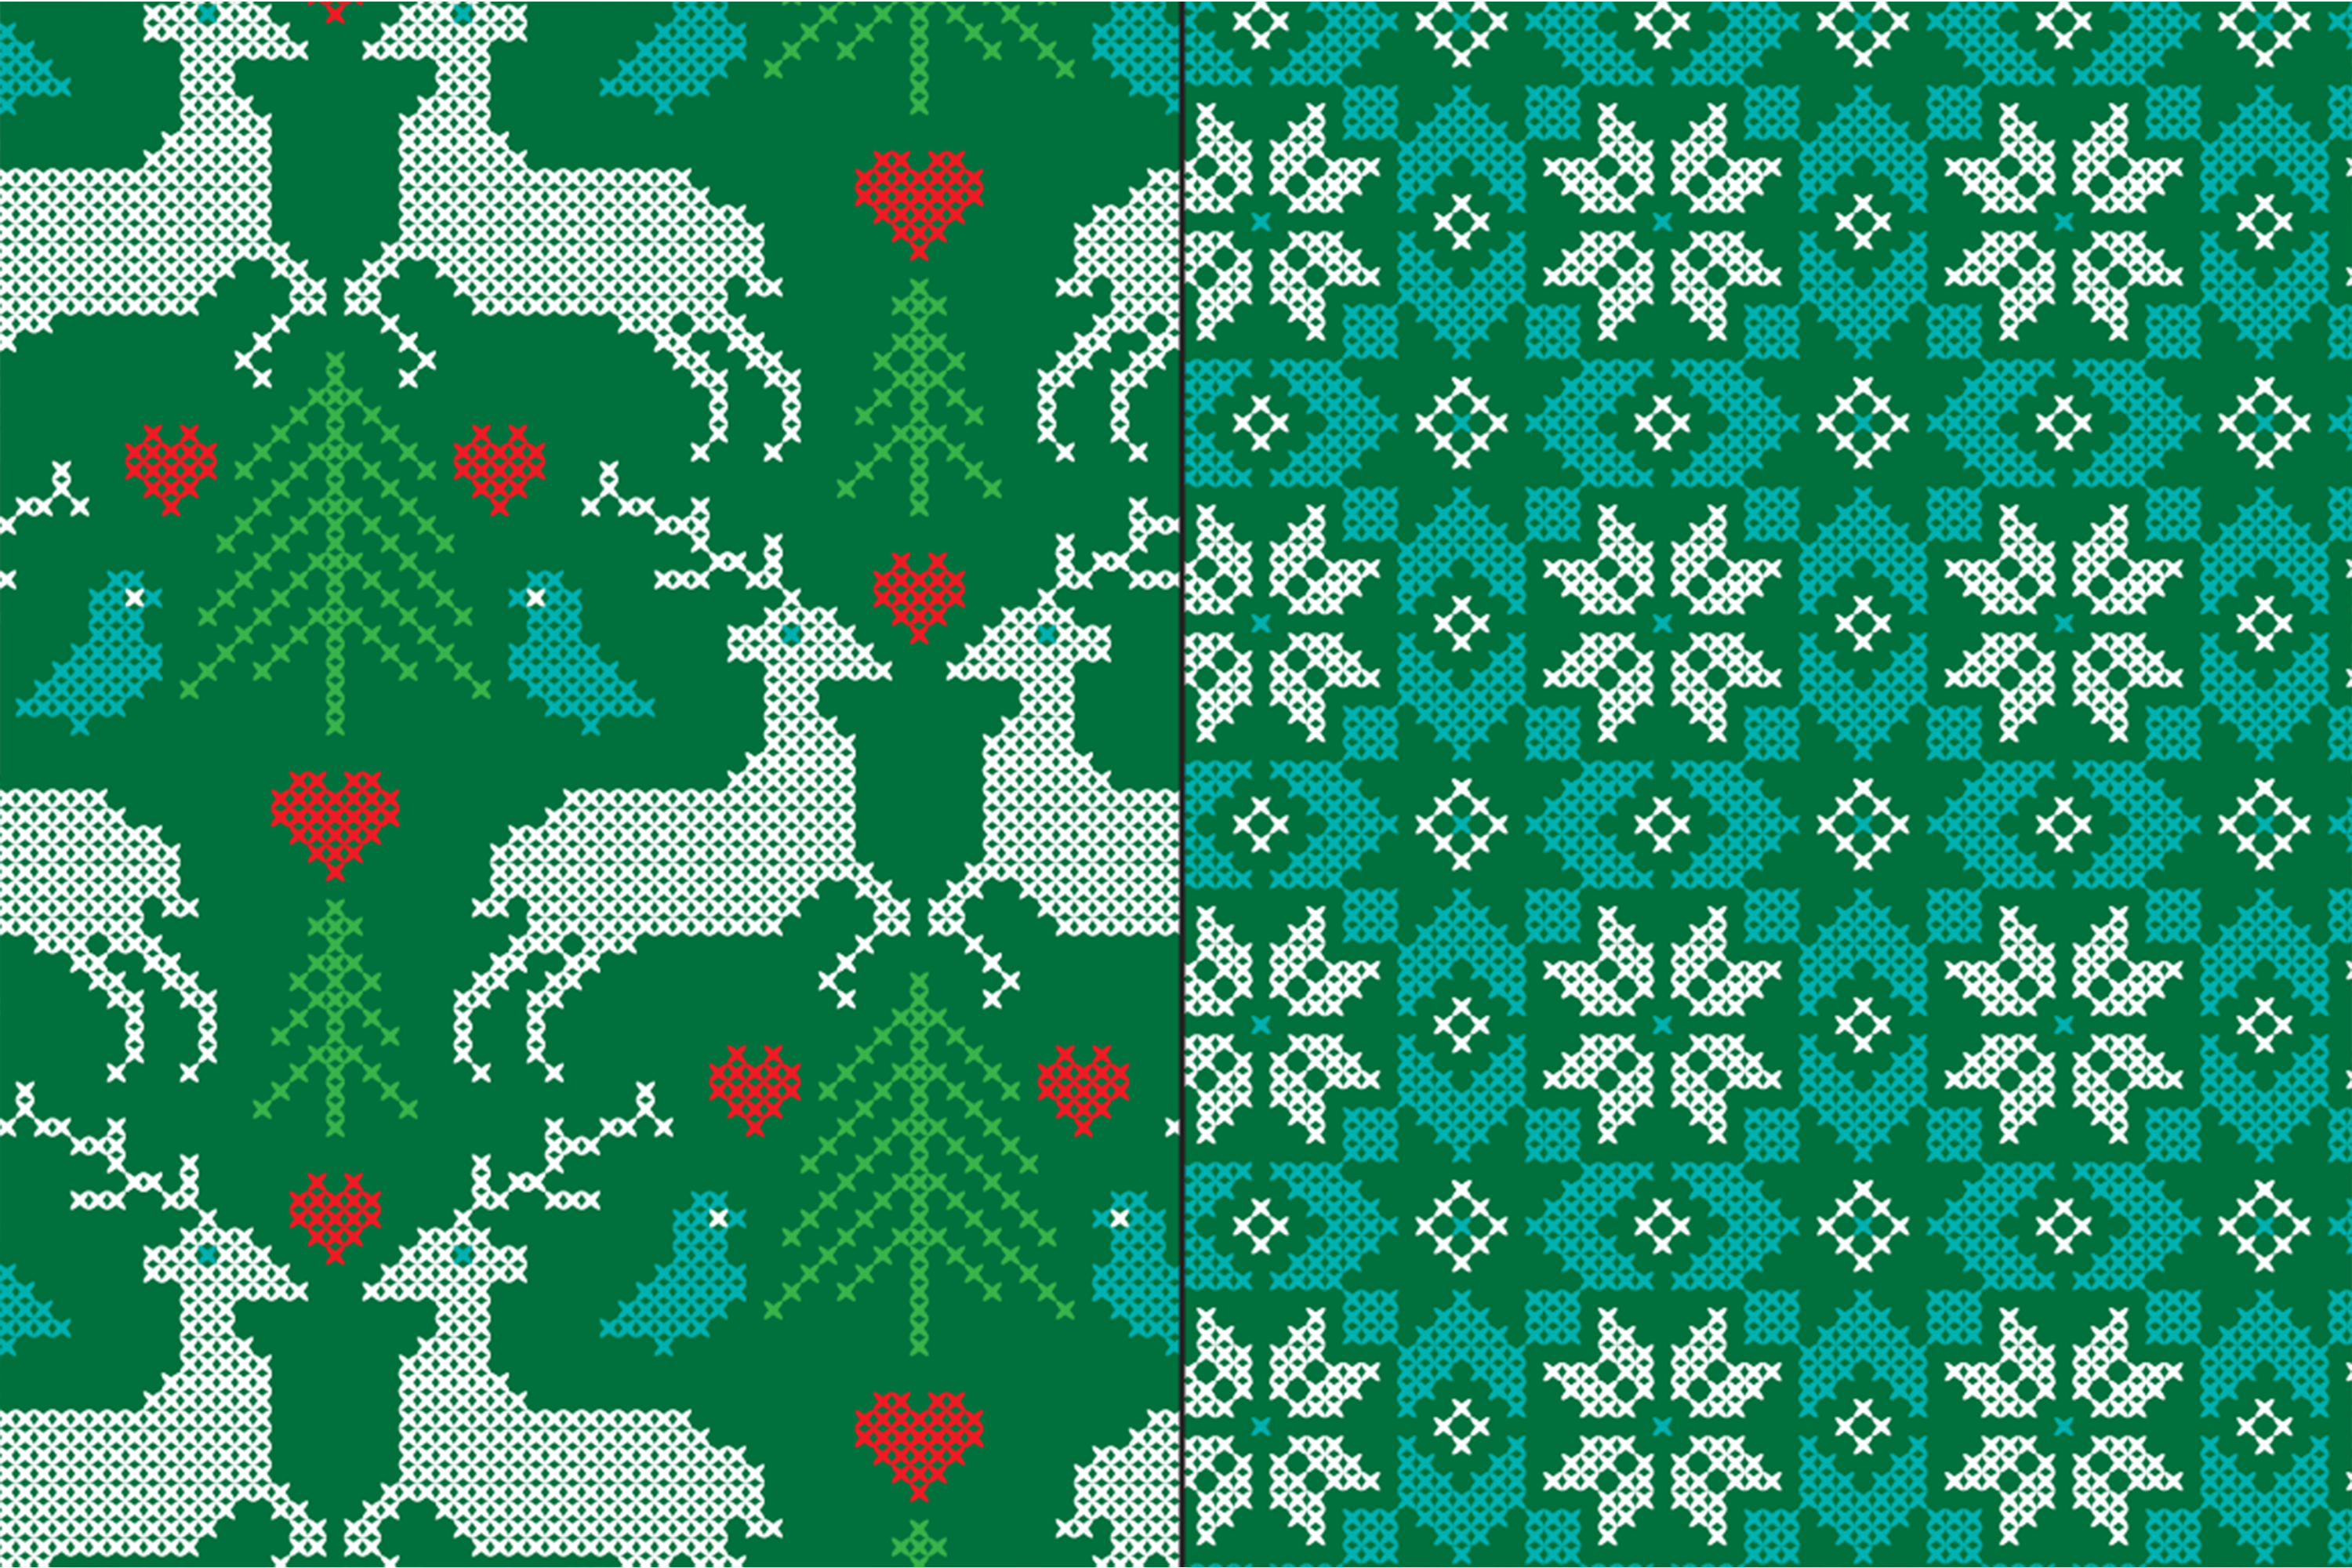 Embroidered Nordic Patterns & Graphics Bundle example image 2